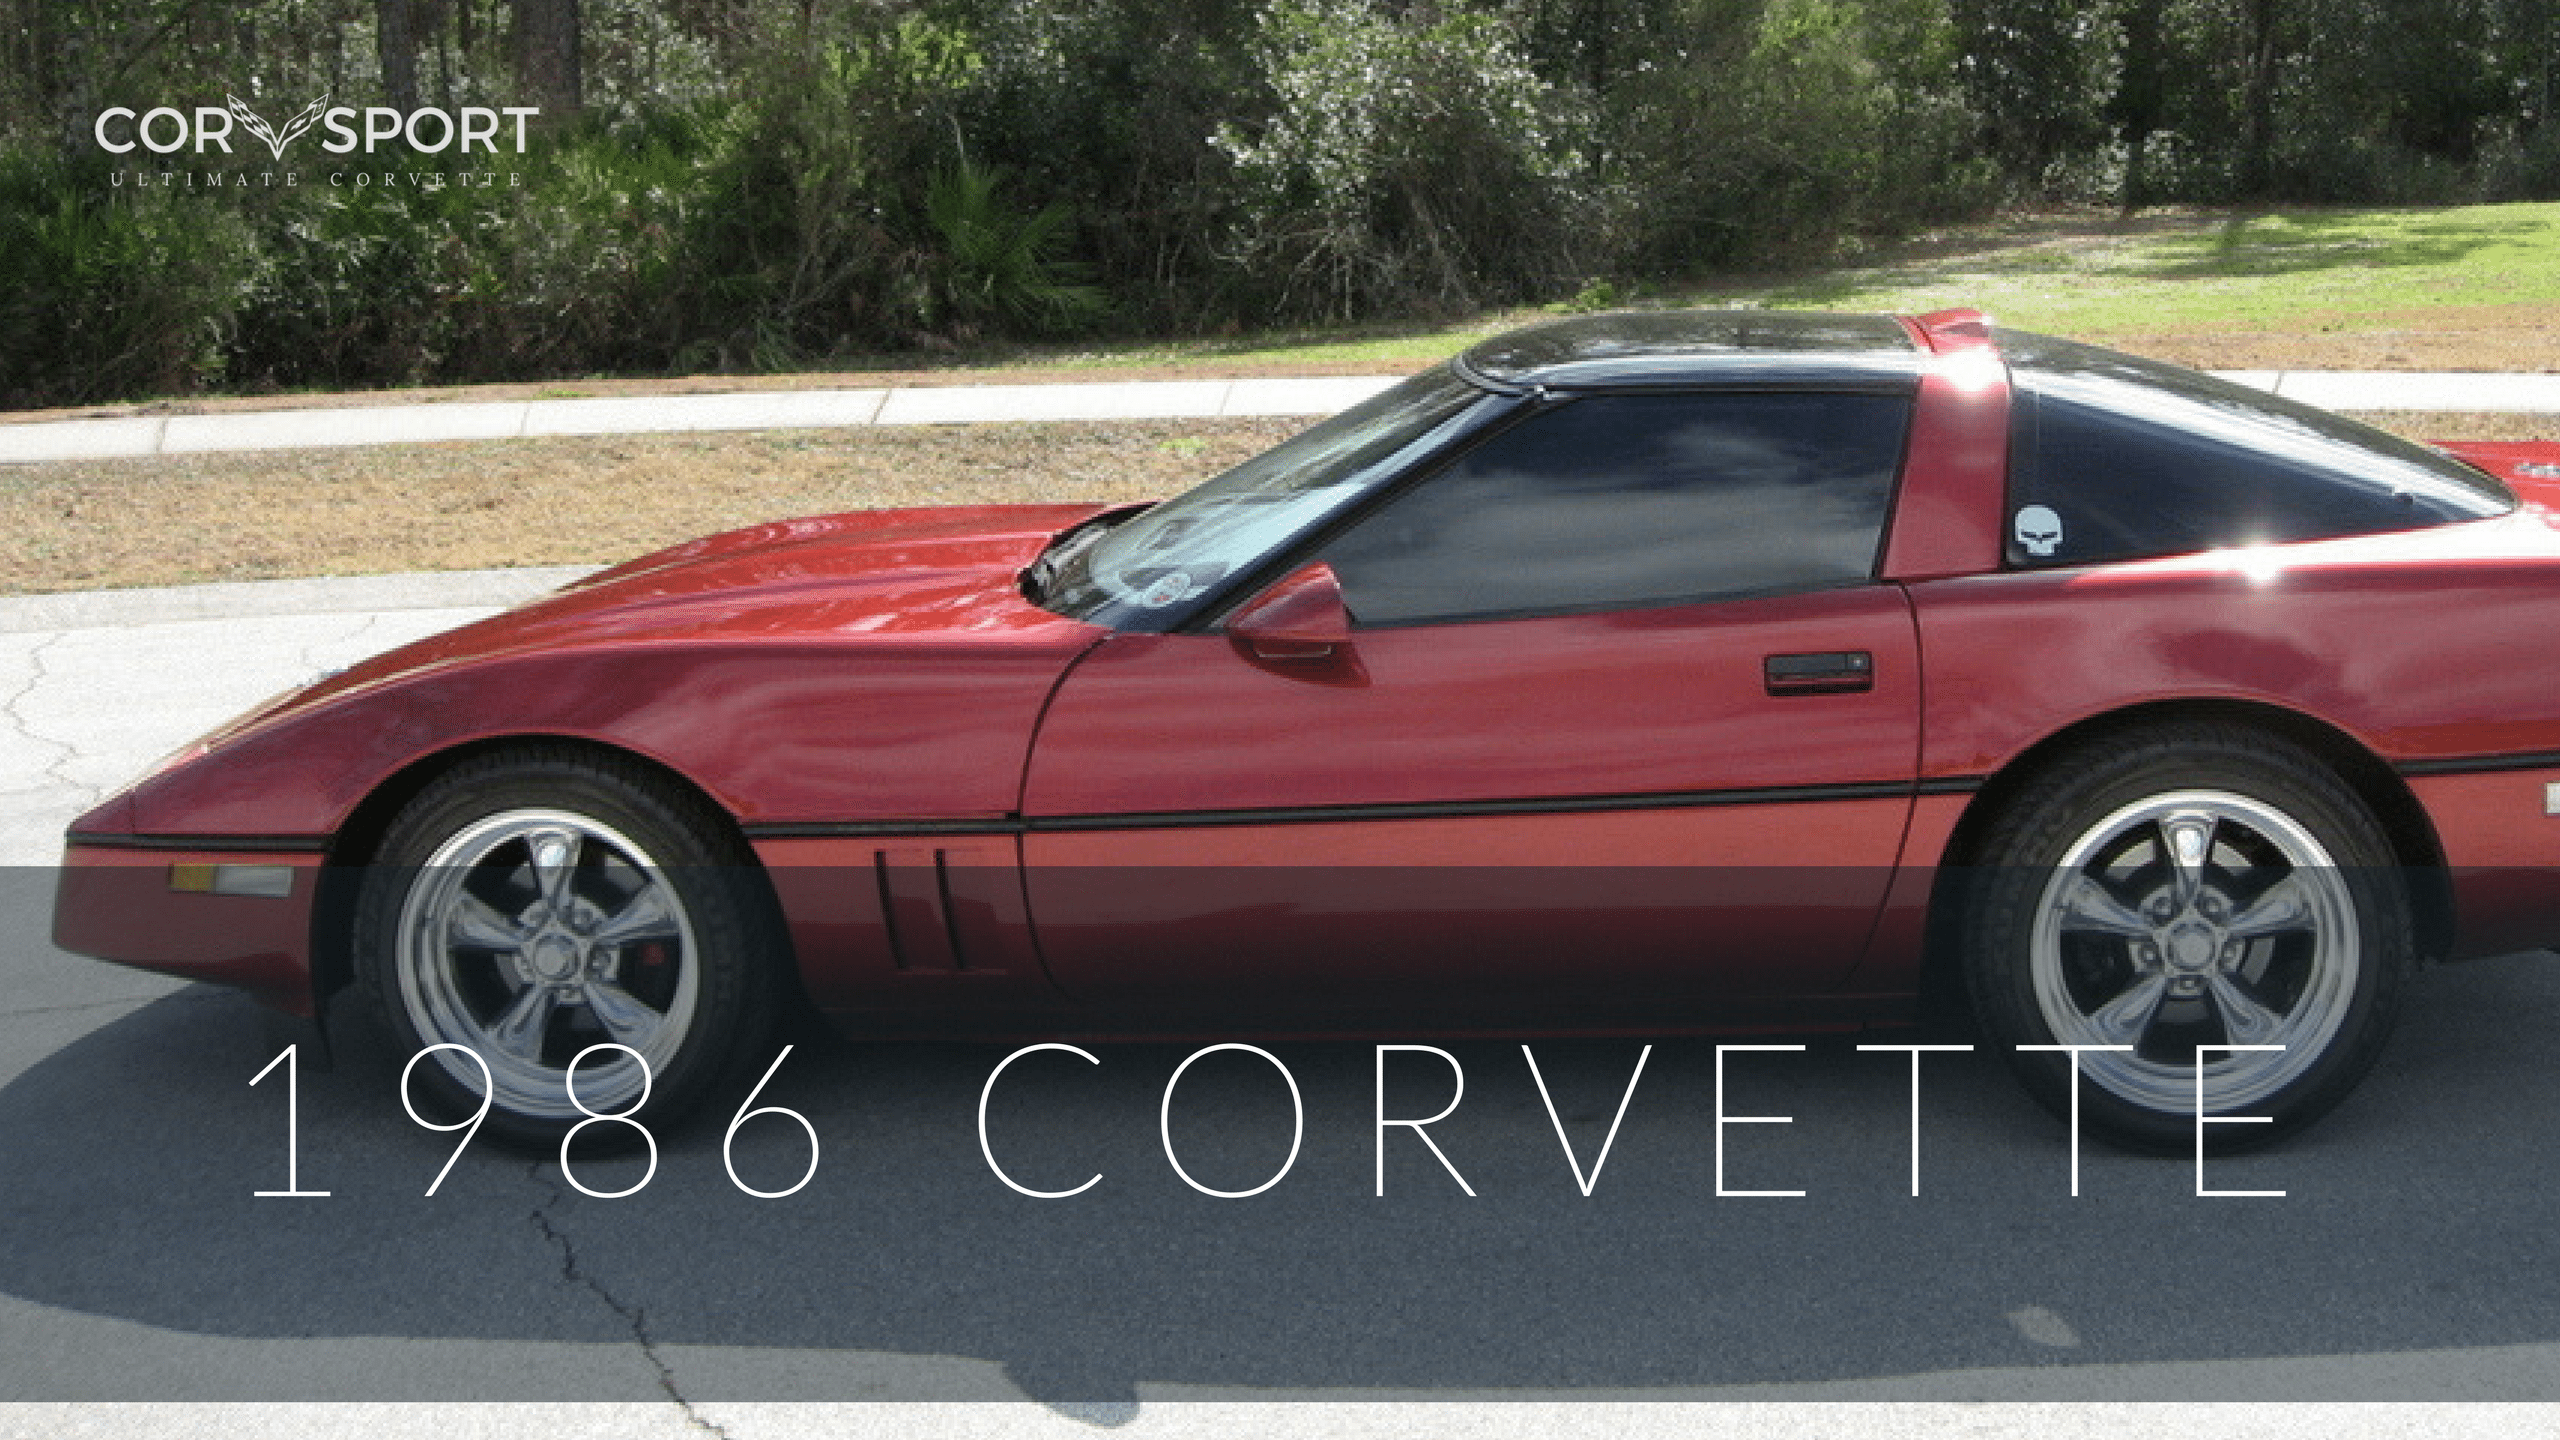 86 corvette top speed